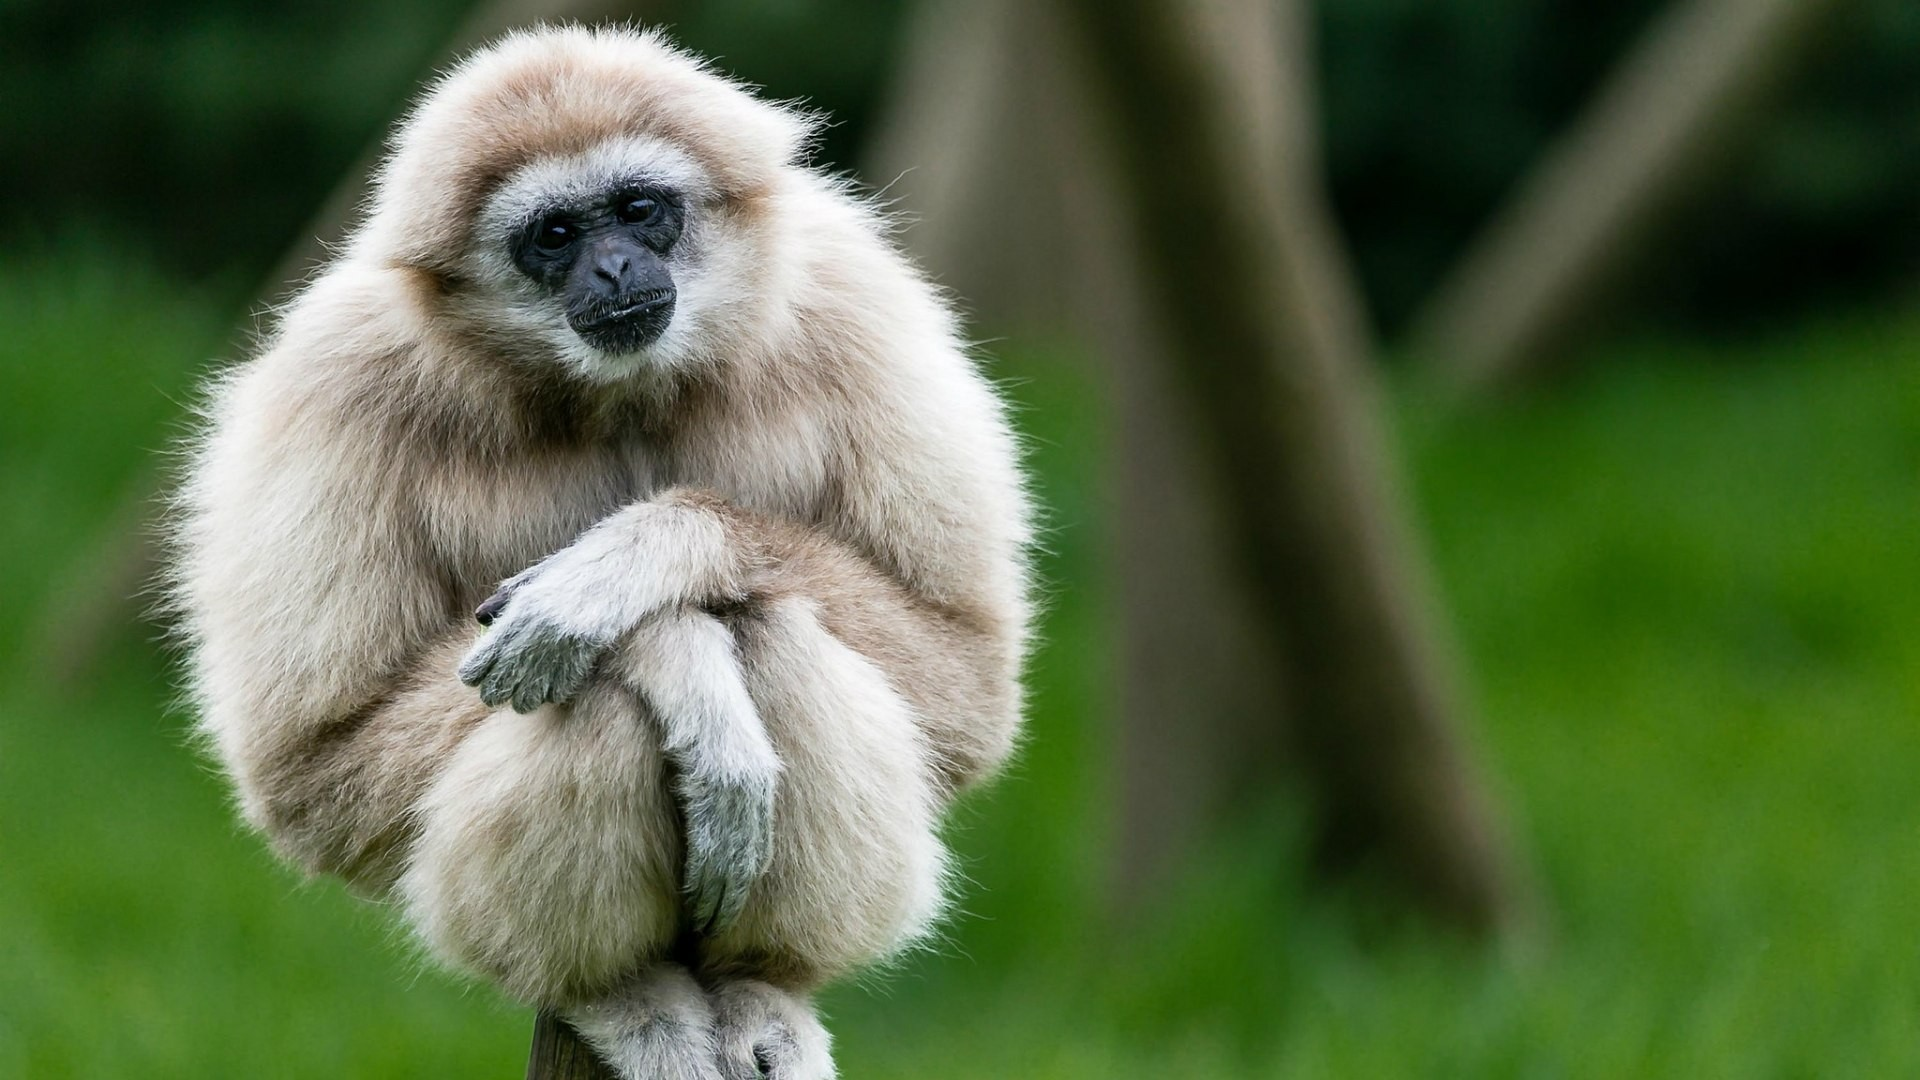 1920x1080 Cute white gibbon